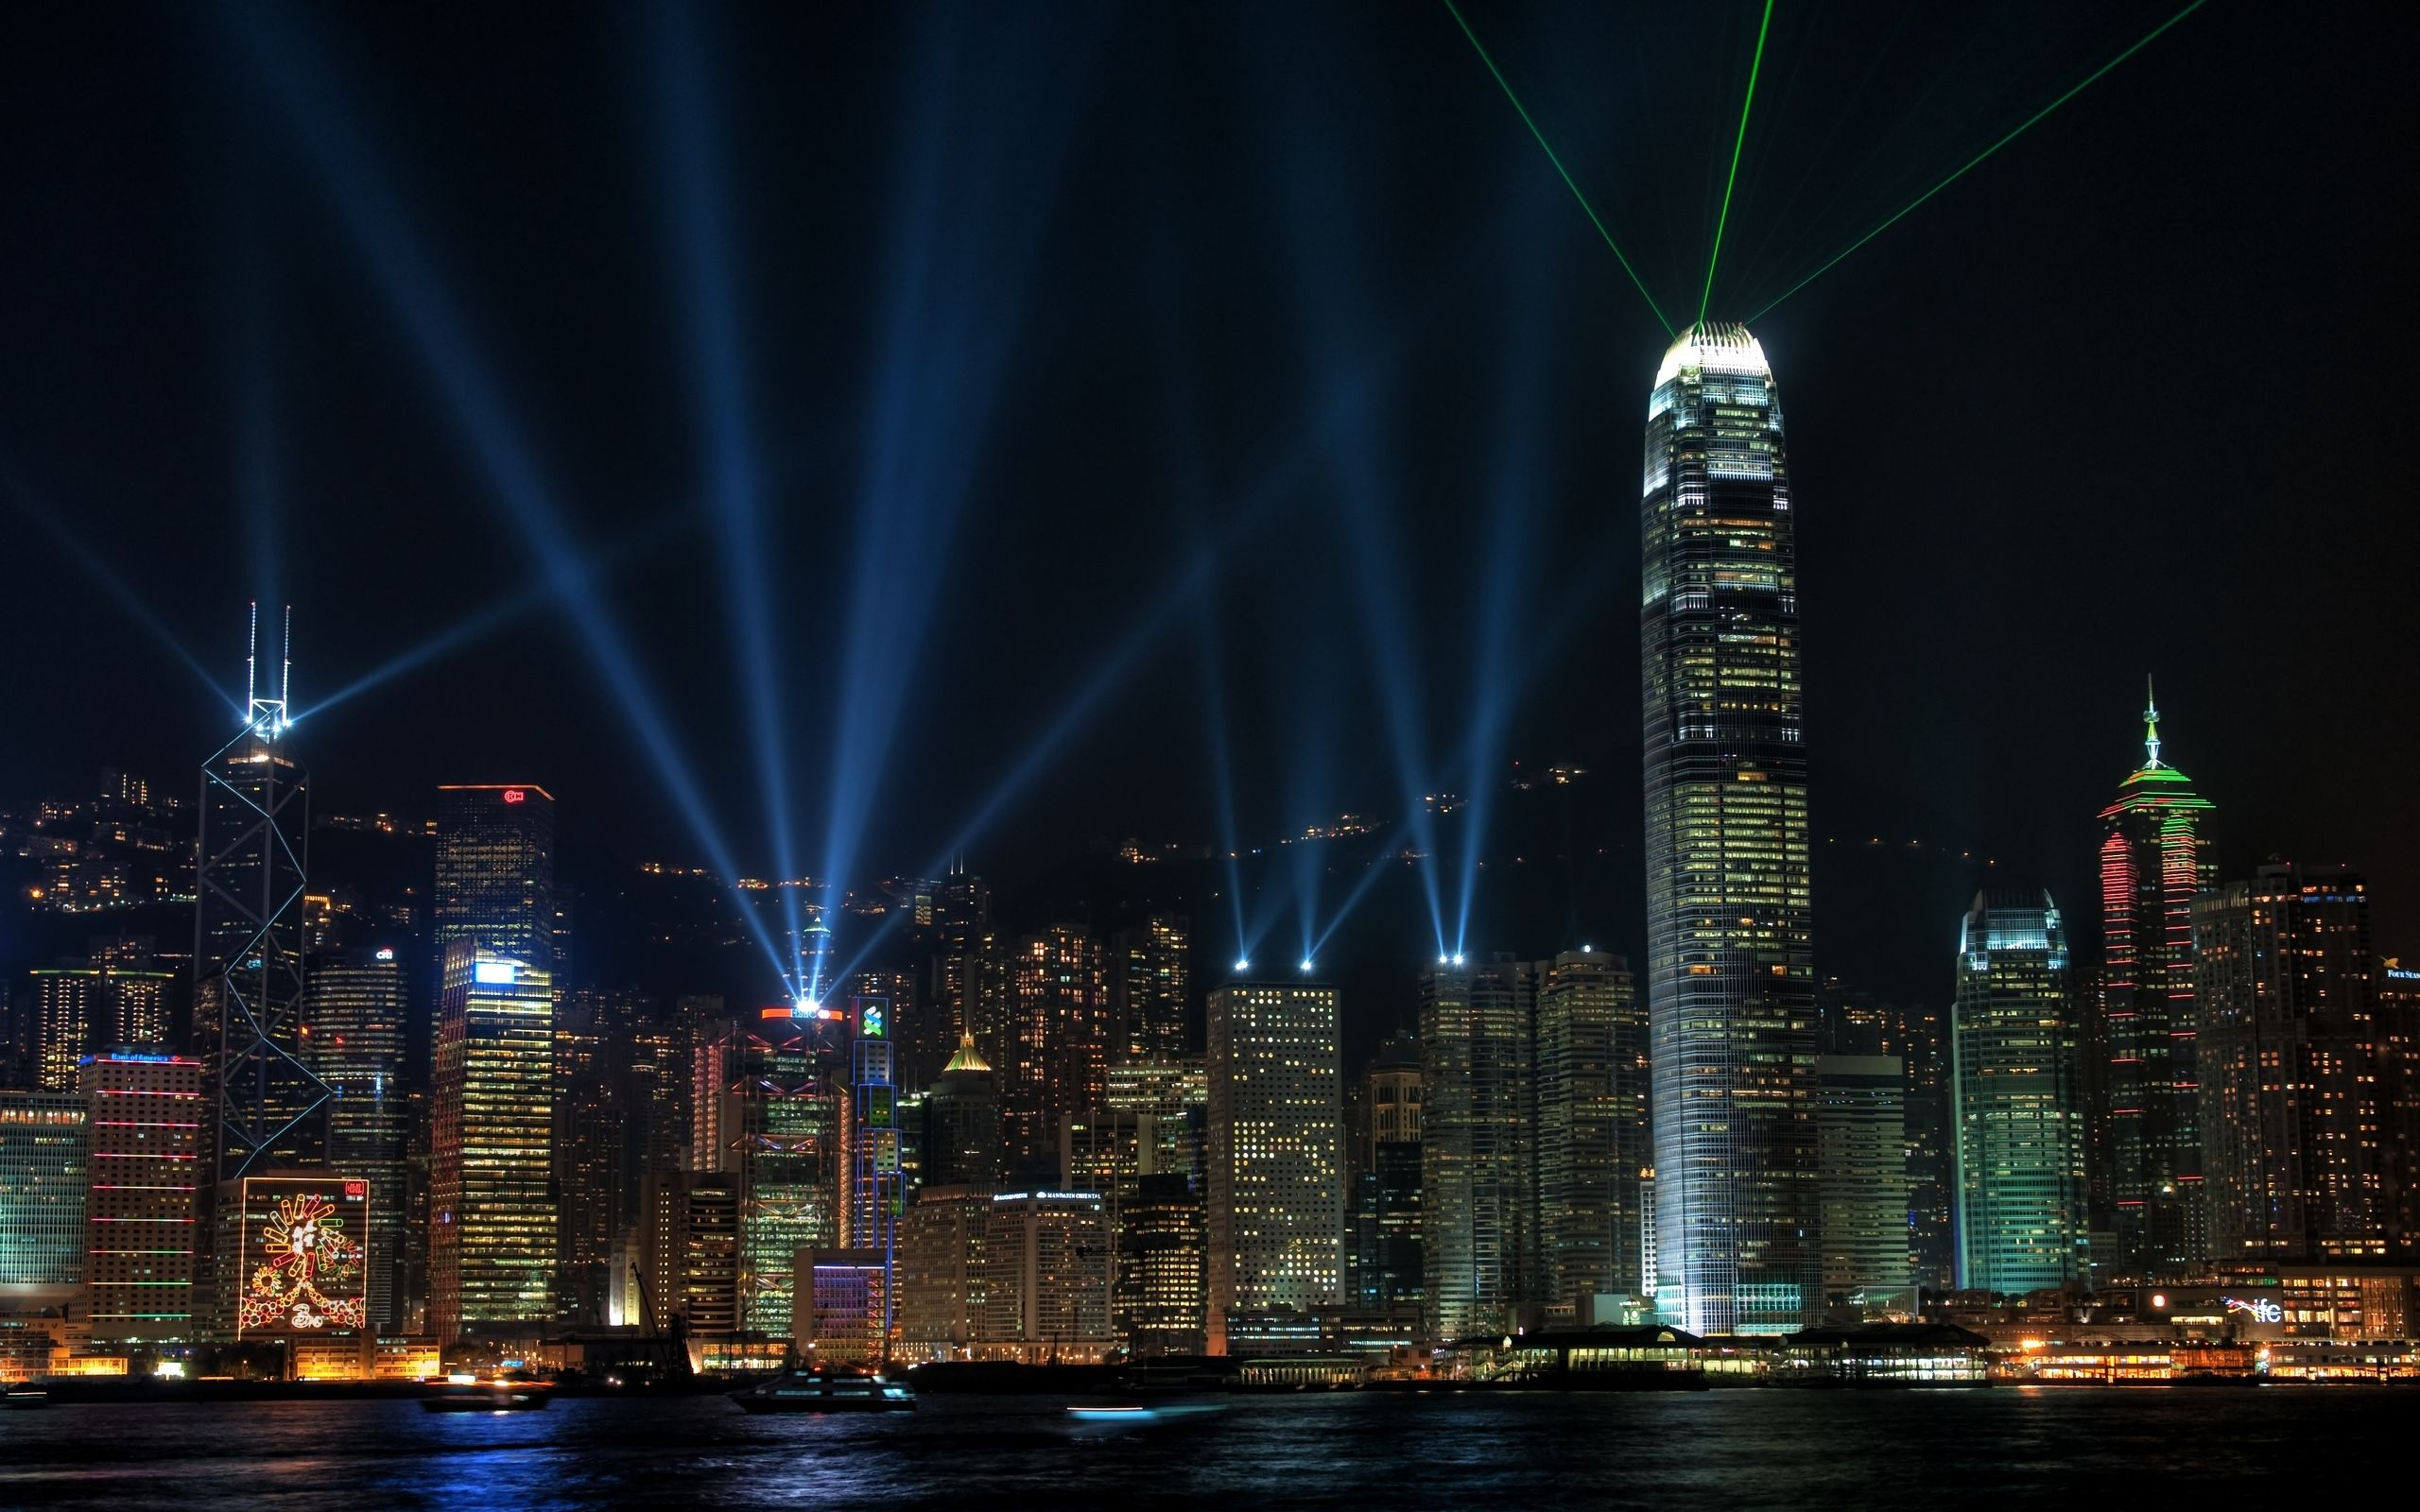 Hong Kong, night, Lights, Beauty, wallpapers , Pc backgrounds, free photos - HD wallpaper desktop backgrounds